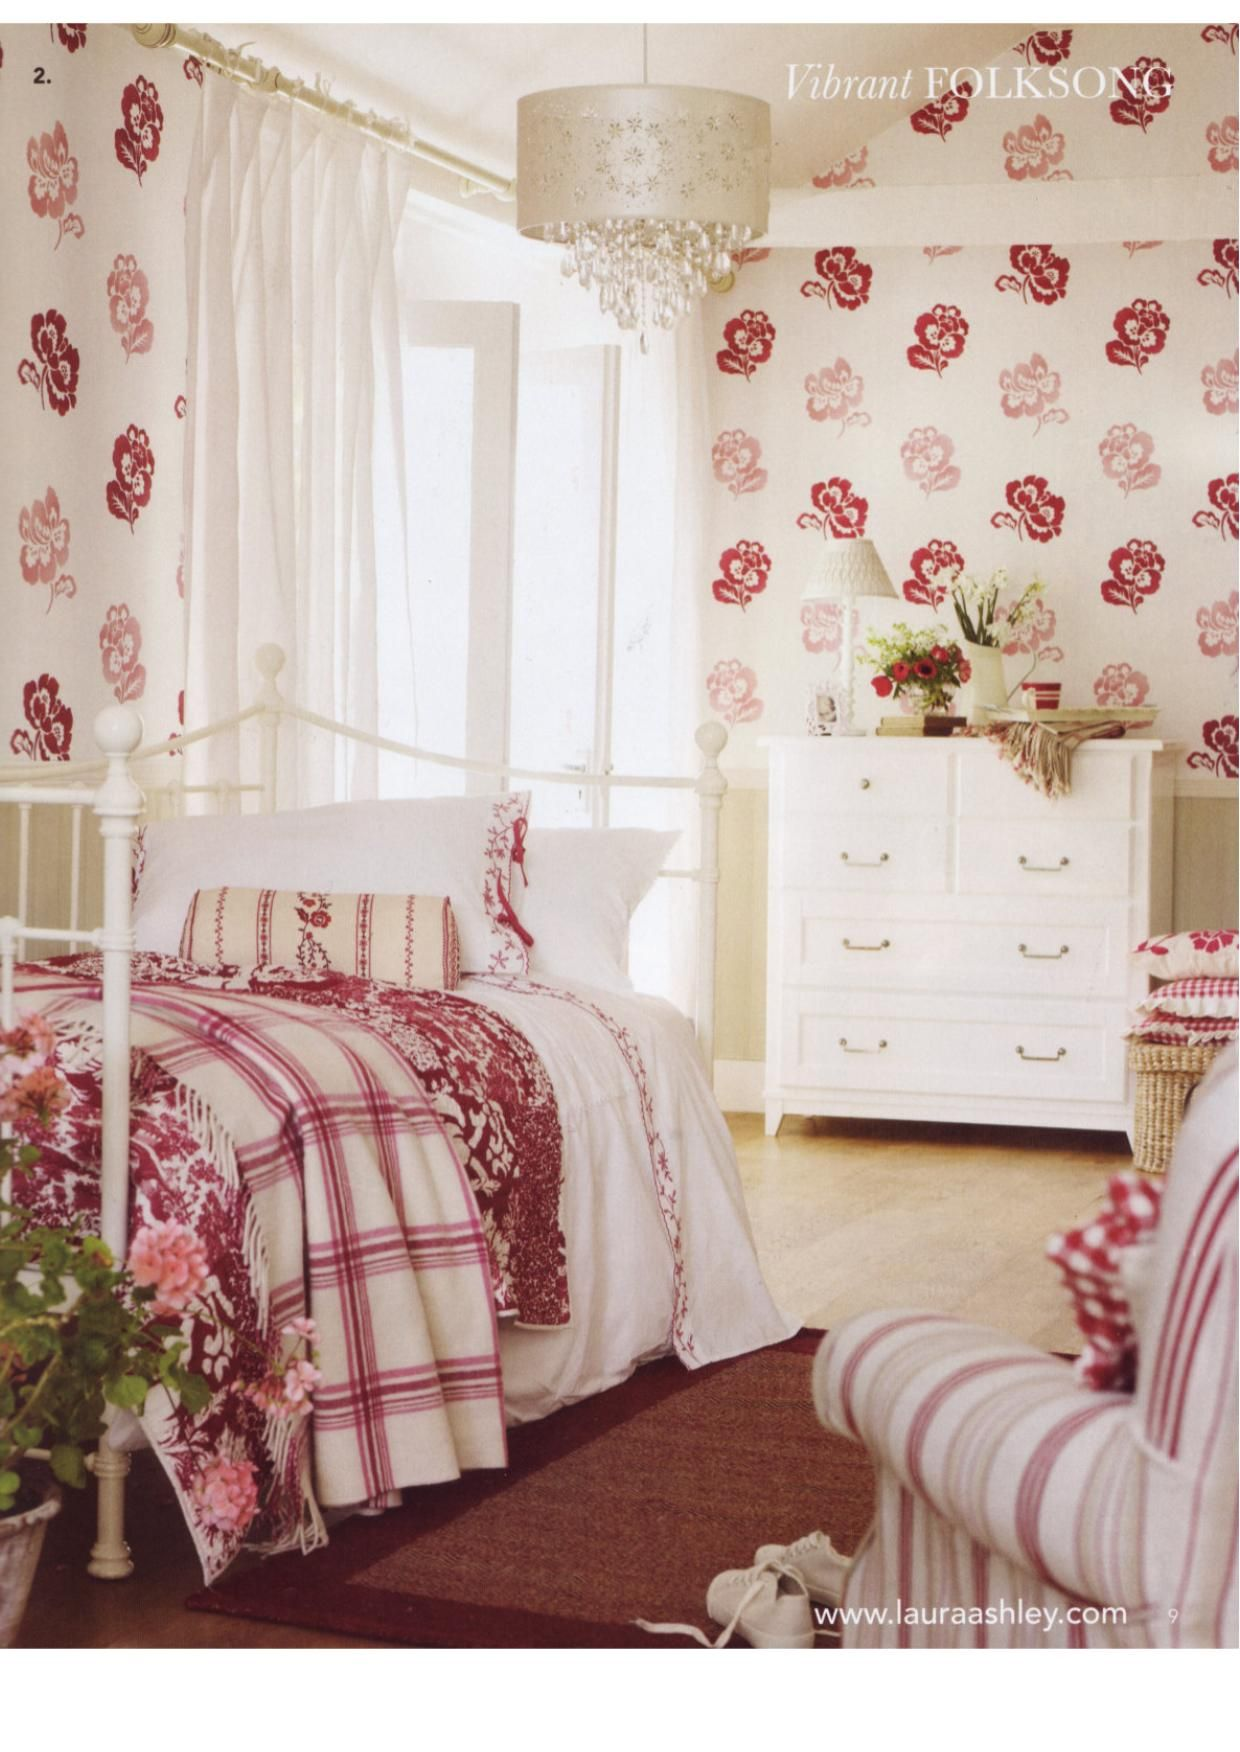 Photos Interieurs Style Anglais Laura Ashley : Laura ashley bedroom ideas pinterest